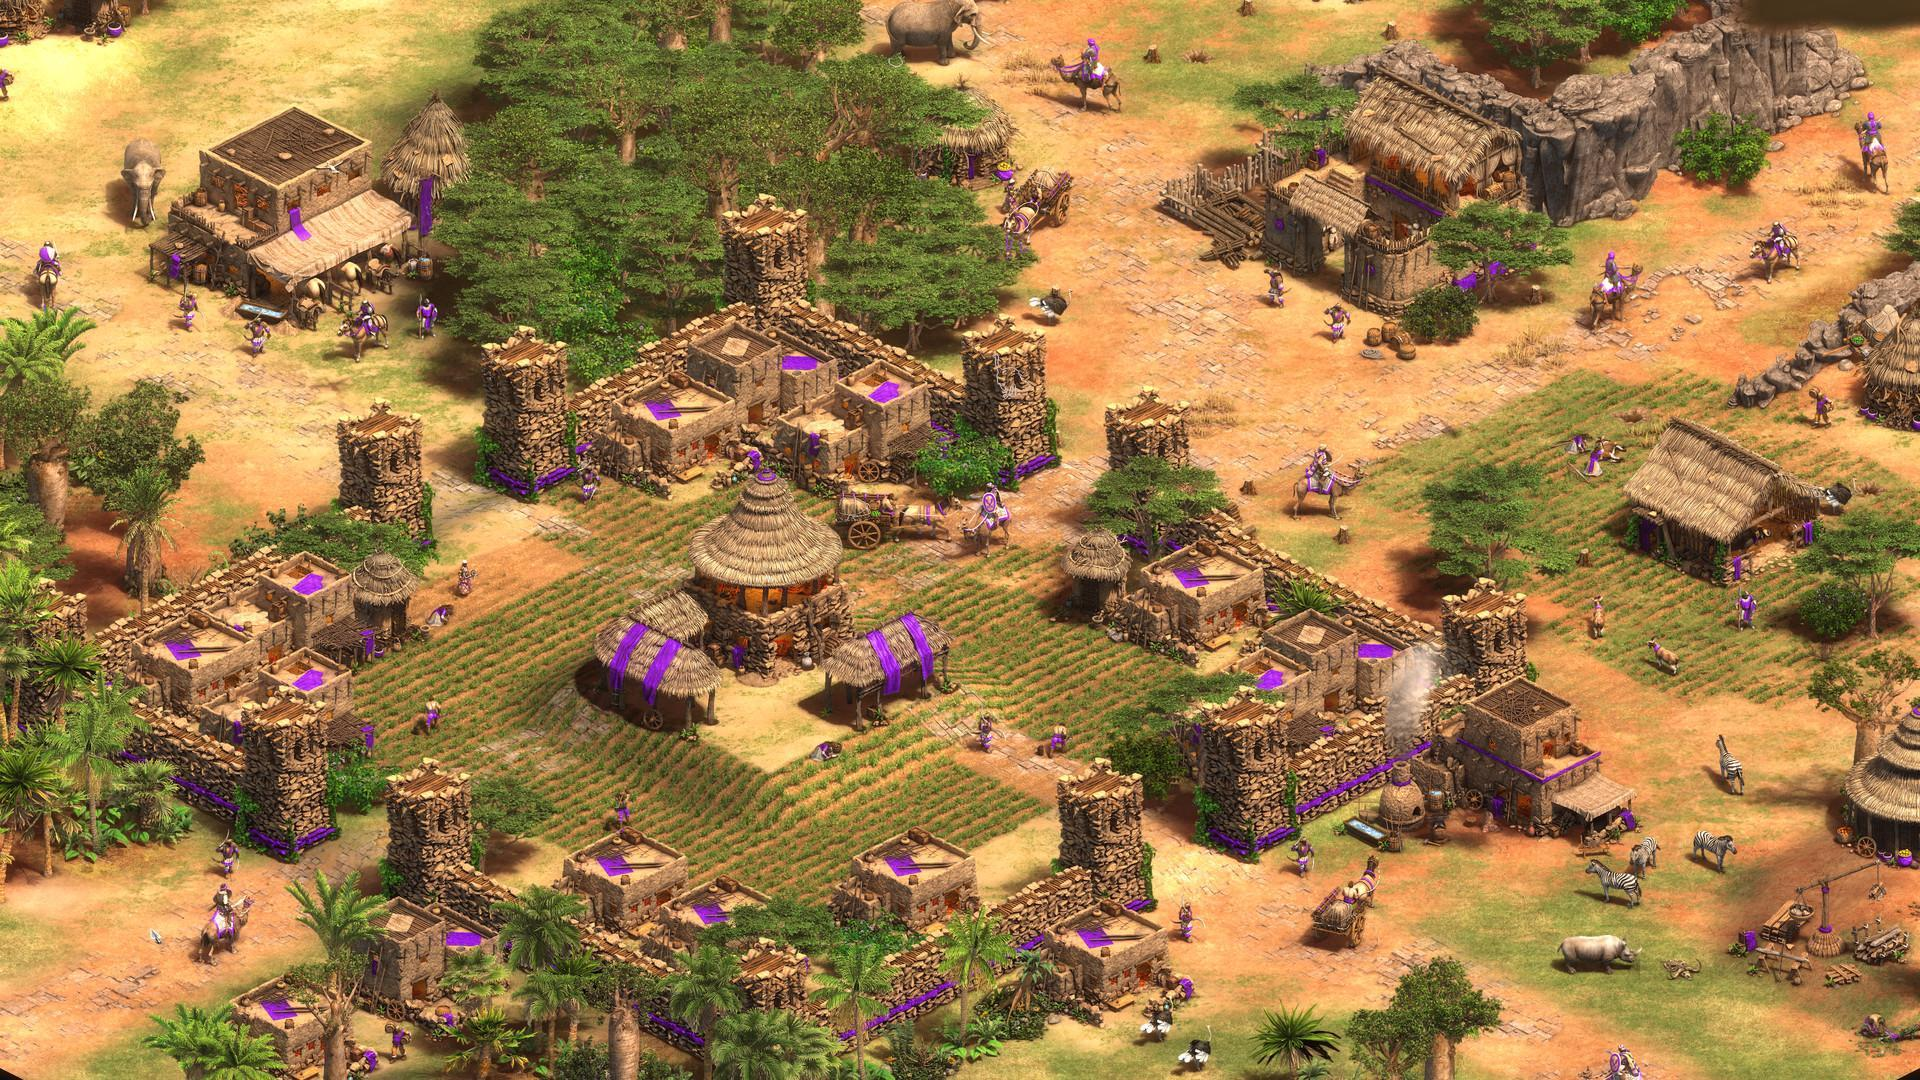 Age of empires 2 free mobile game download casualty game 2 walkthrough level 3